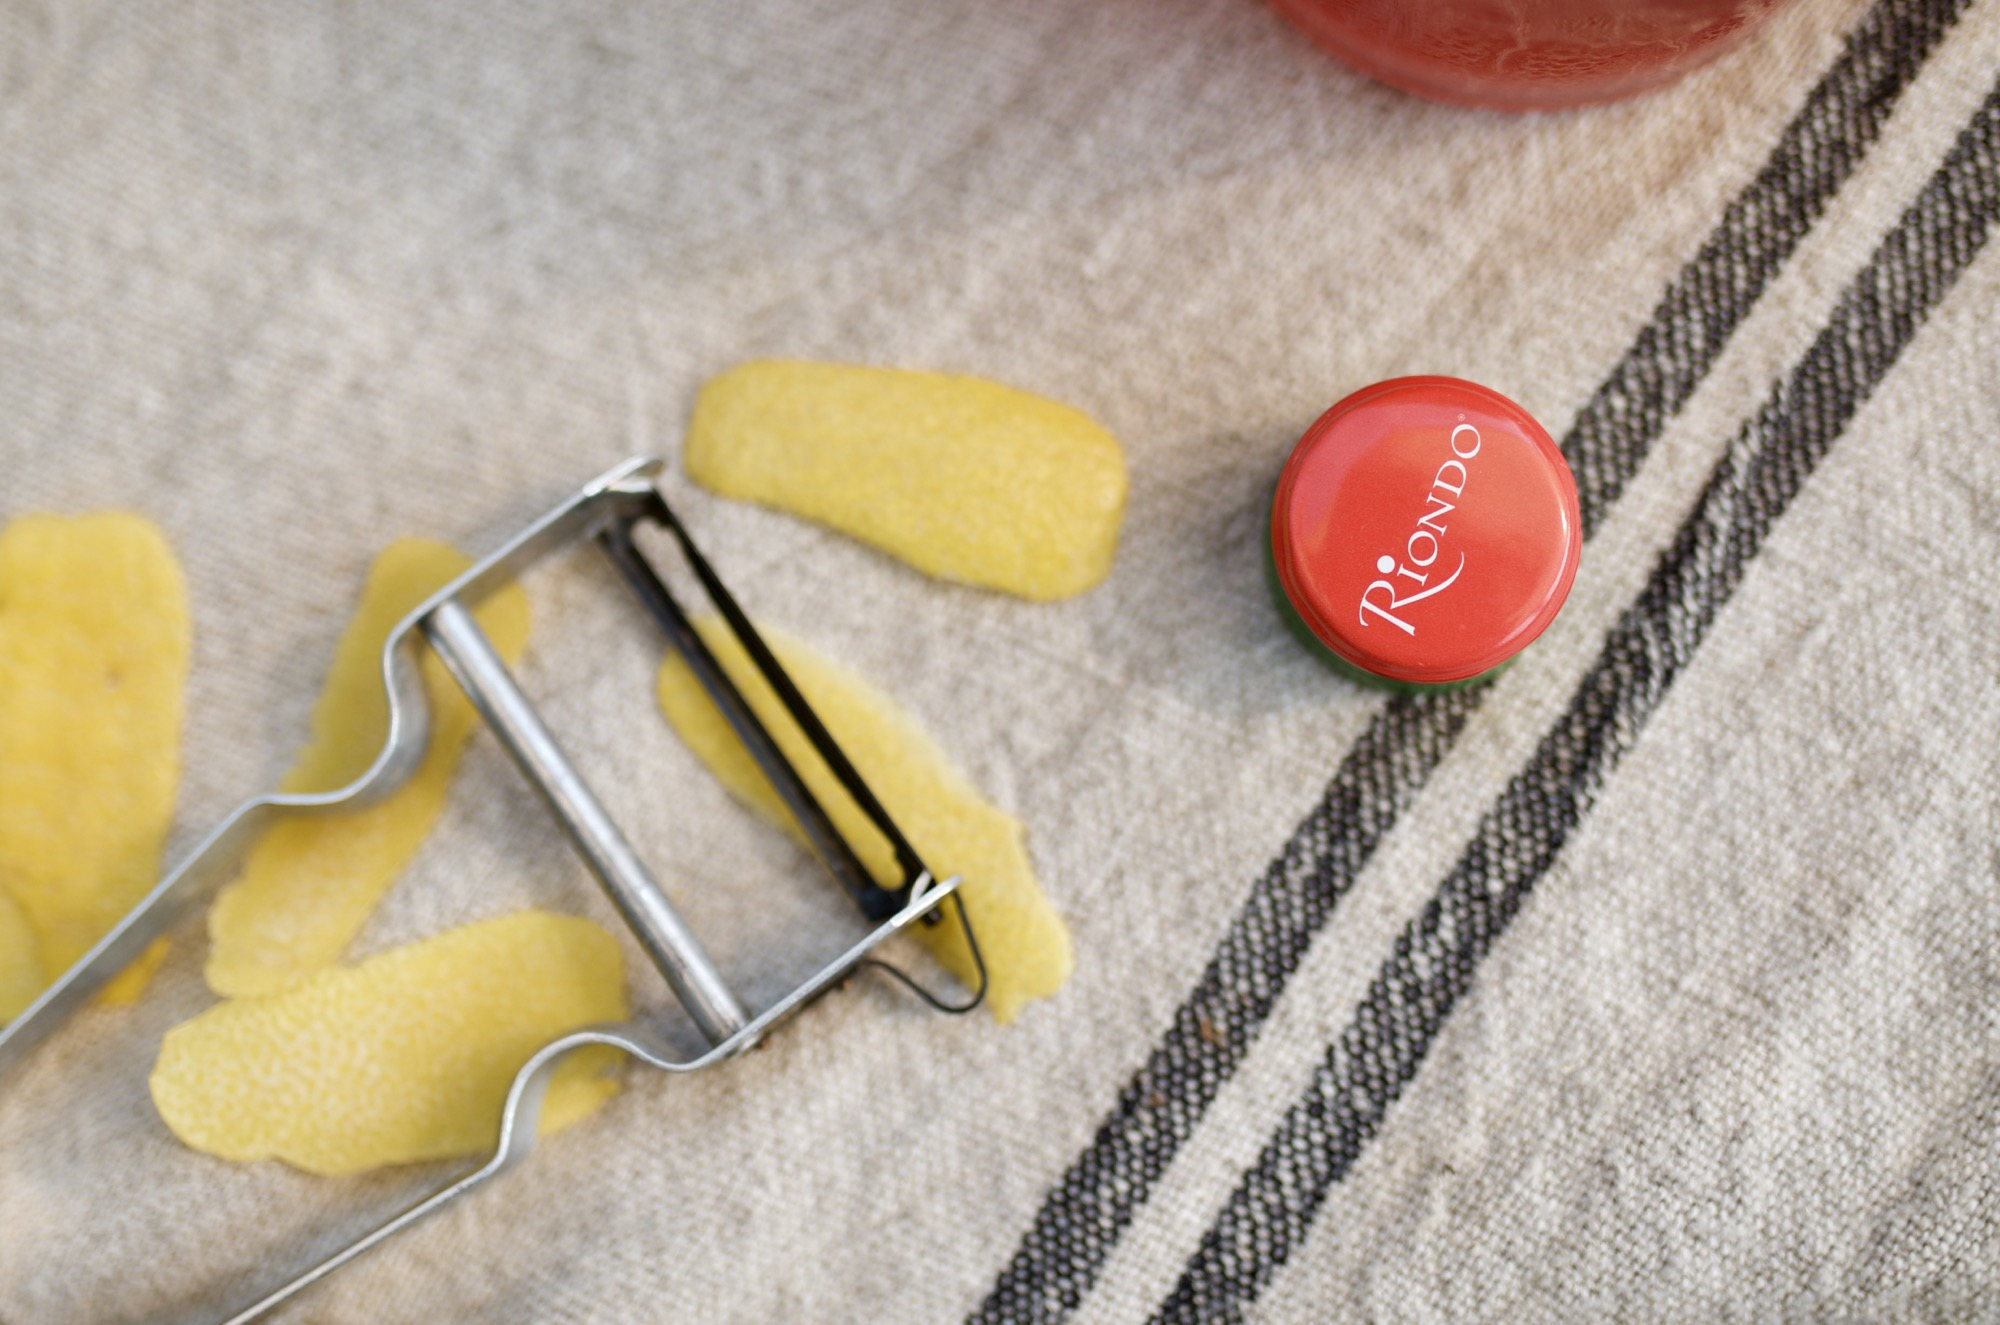 riondo bottle cap and a peeler with lemon garnishes